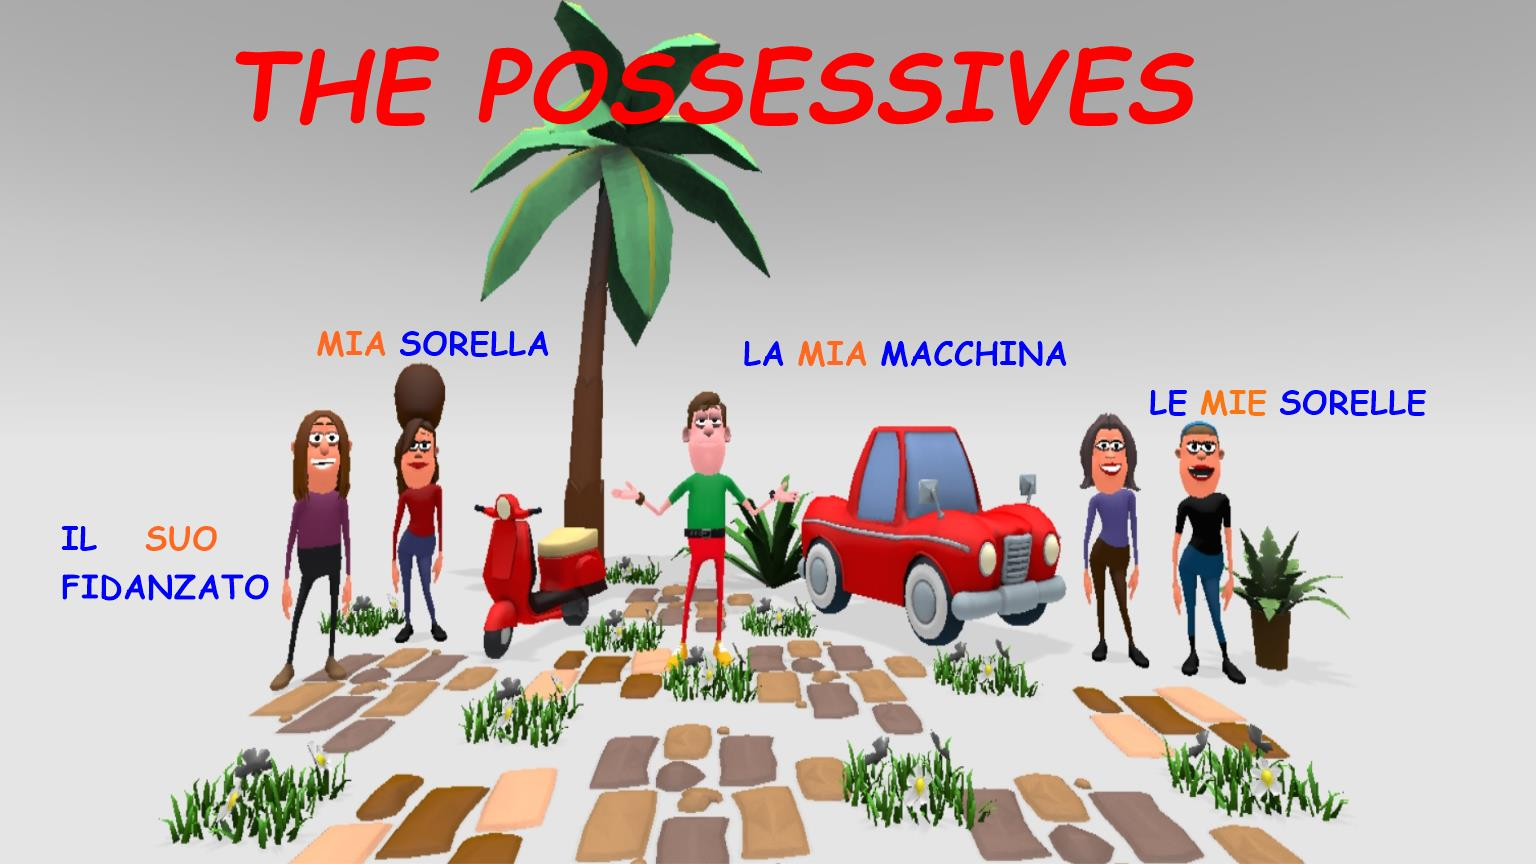 Possessives